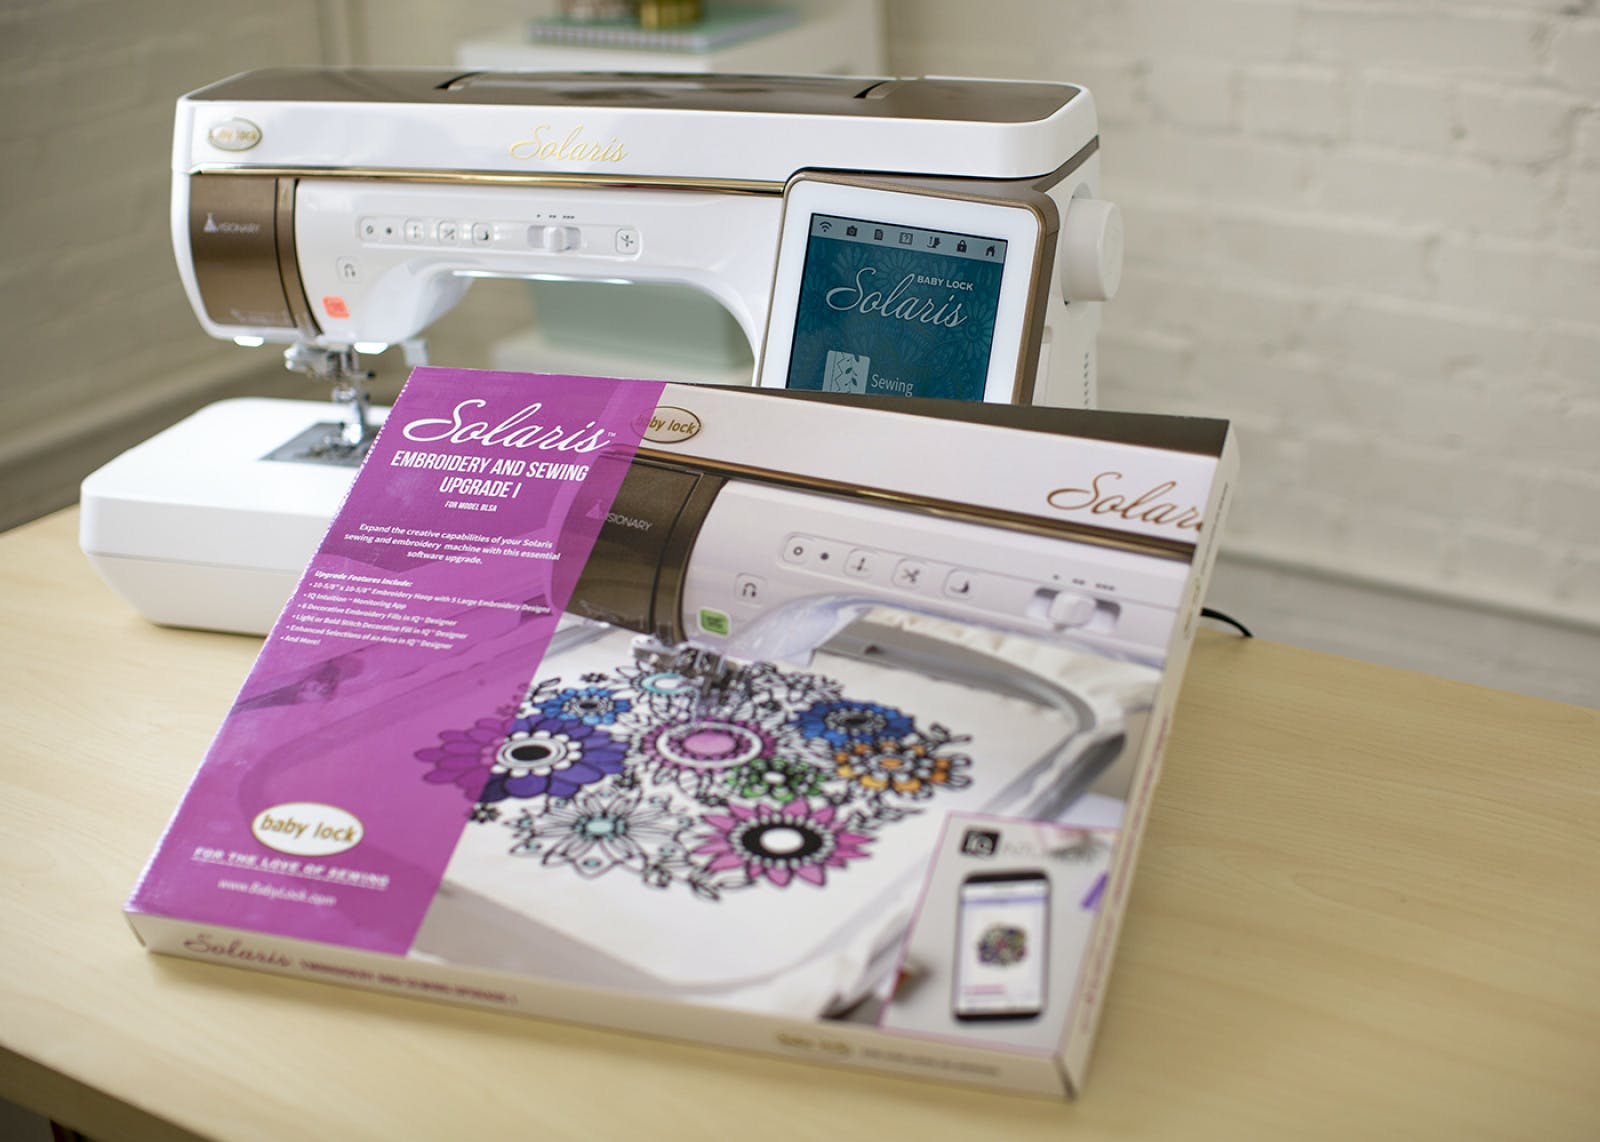 Sewing Machine Accessory, Solaris Embroidery and Sewing Upgrade I